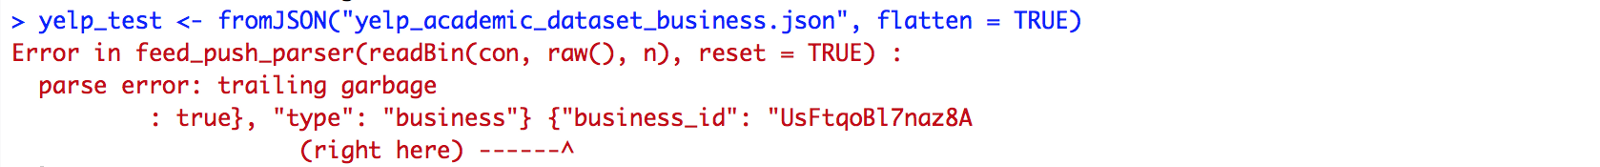 Working With Json Data In Very Simple Way Learn Data Science